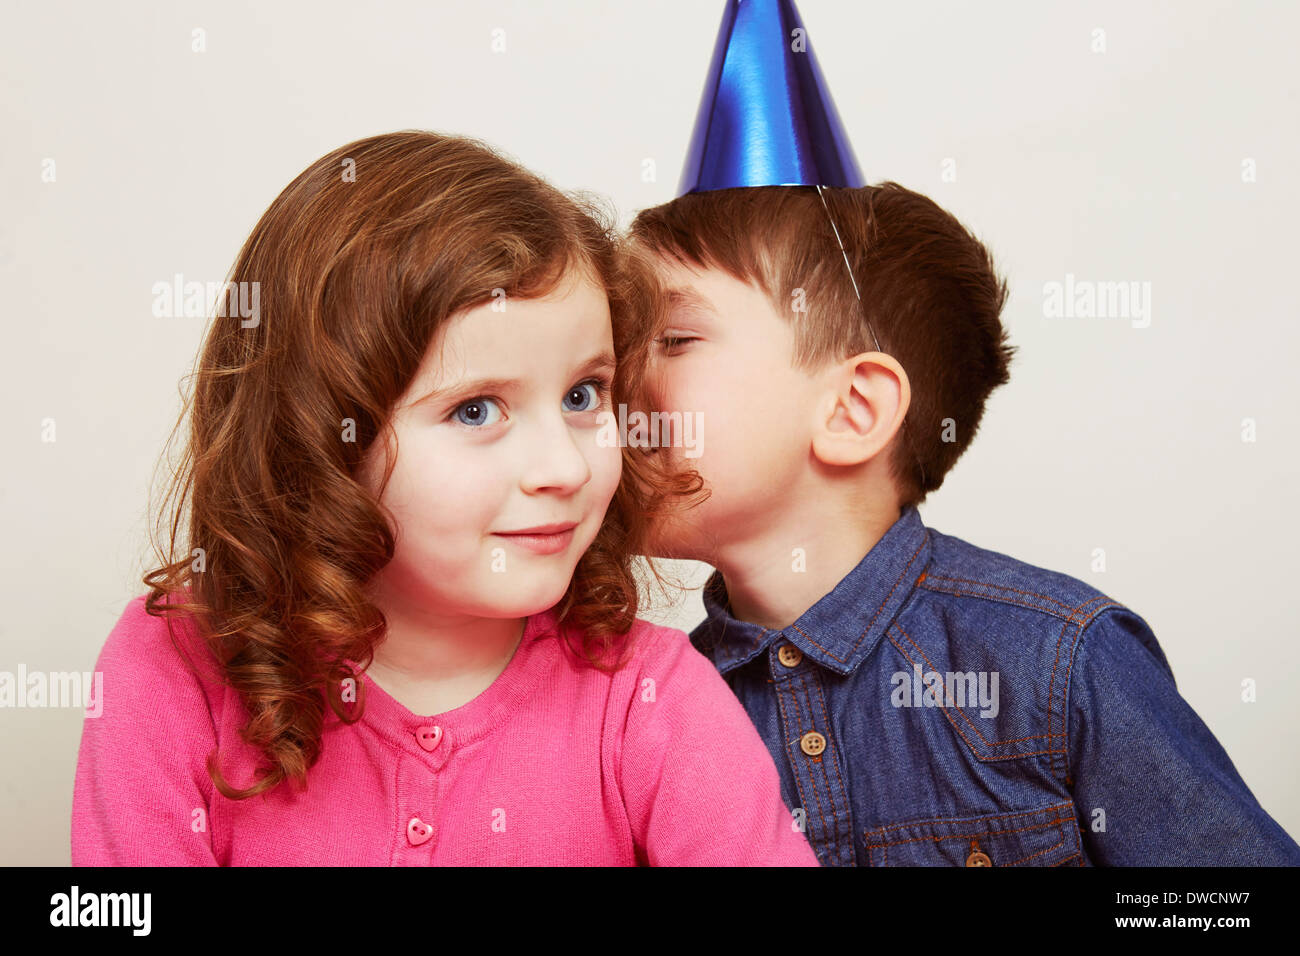 Boy wearing party hat whispering to girl Stock Photo